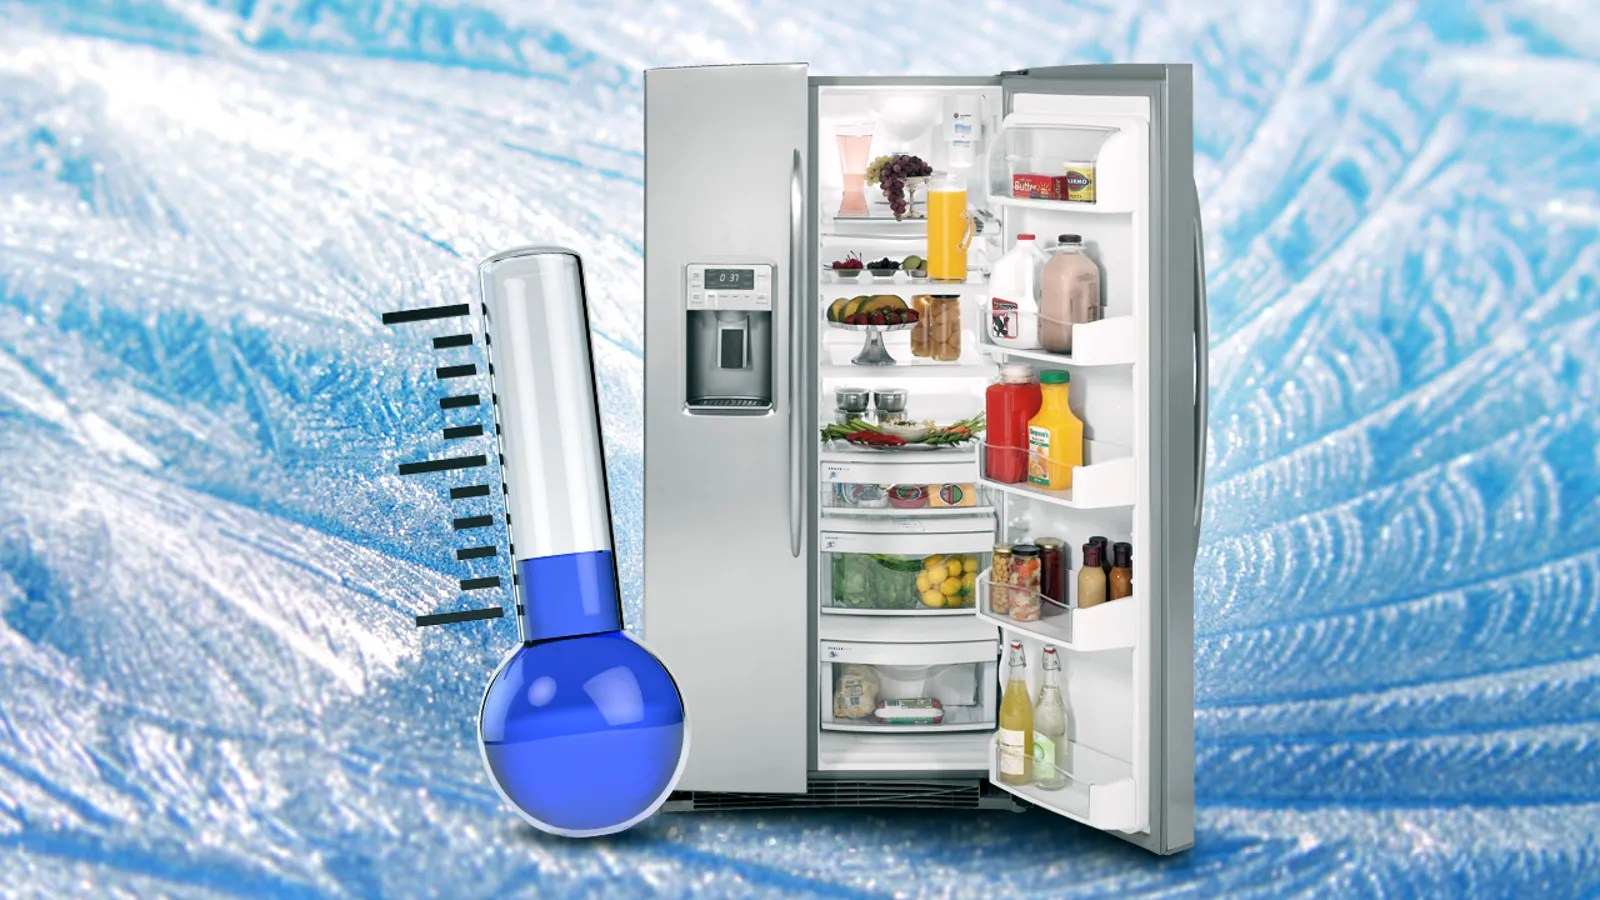 What Temperature Should You Keep Your Refrigerator Set At